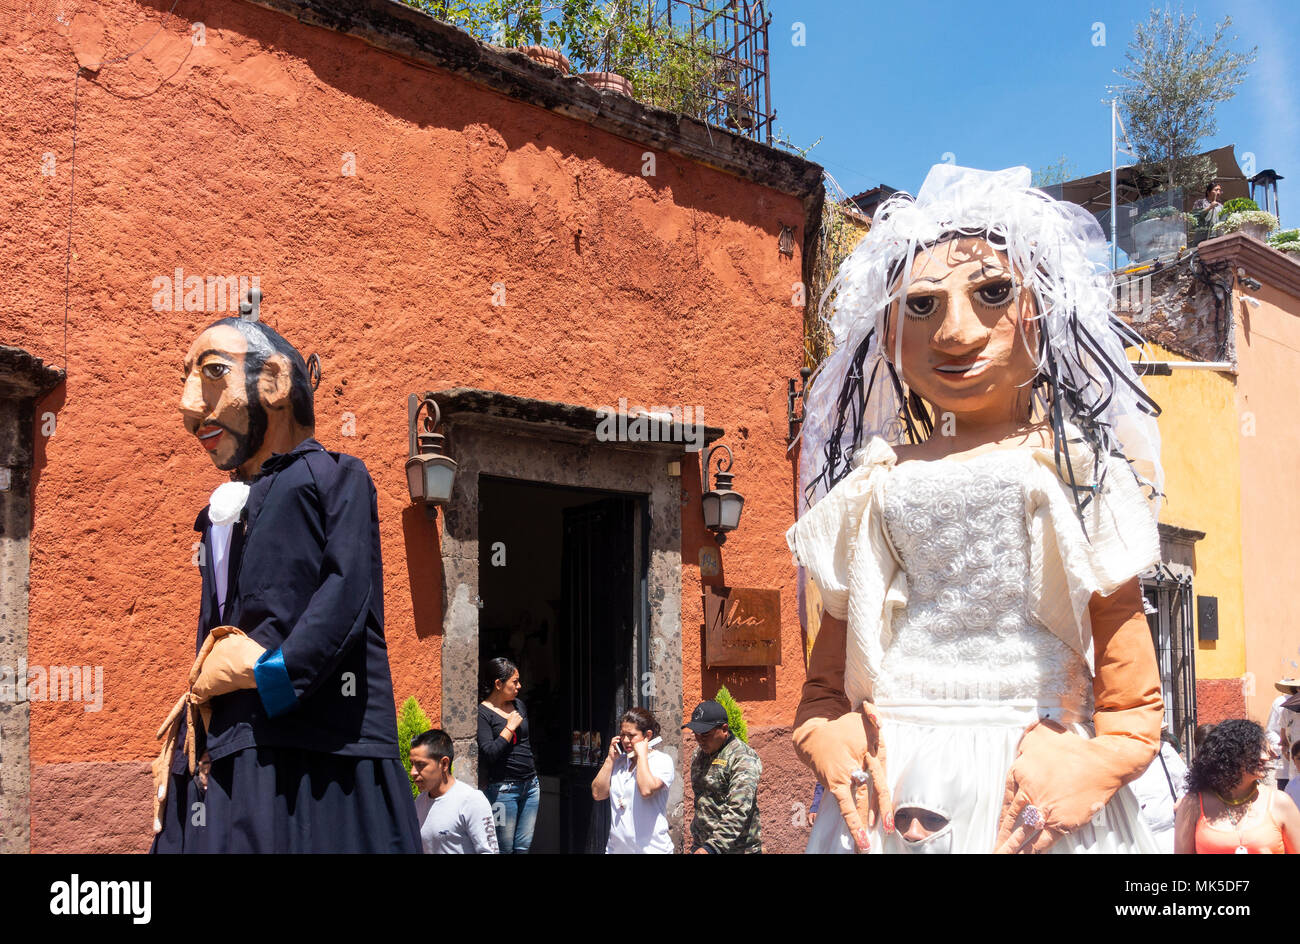 In San Miguel de Allende, a parade with two mojigangas, giant puppets - Stock Image